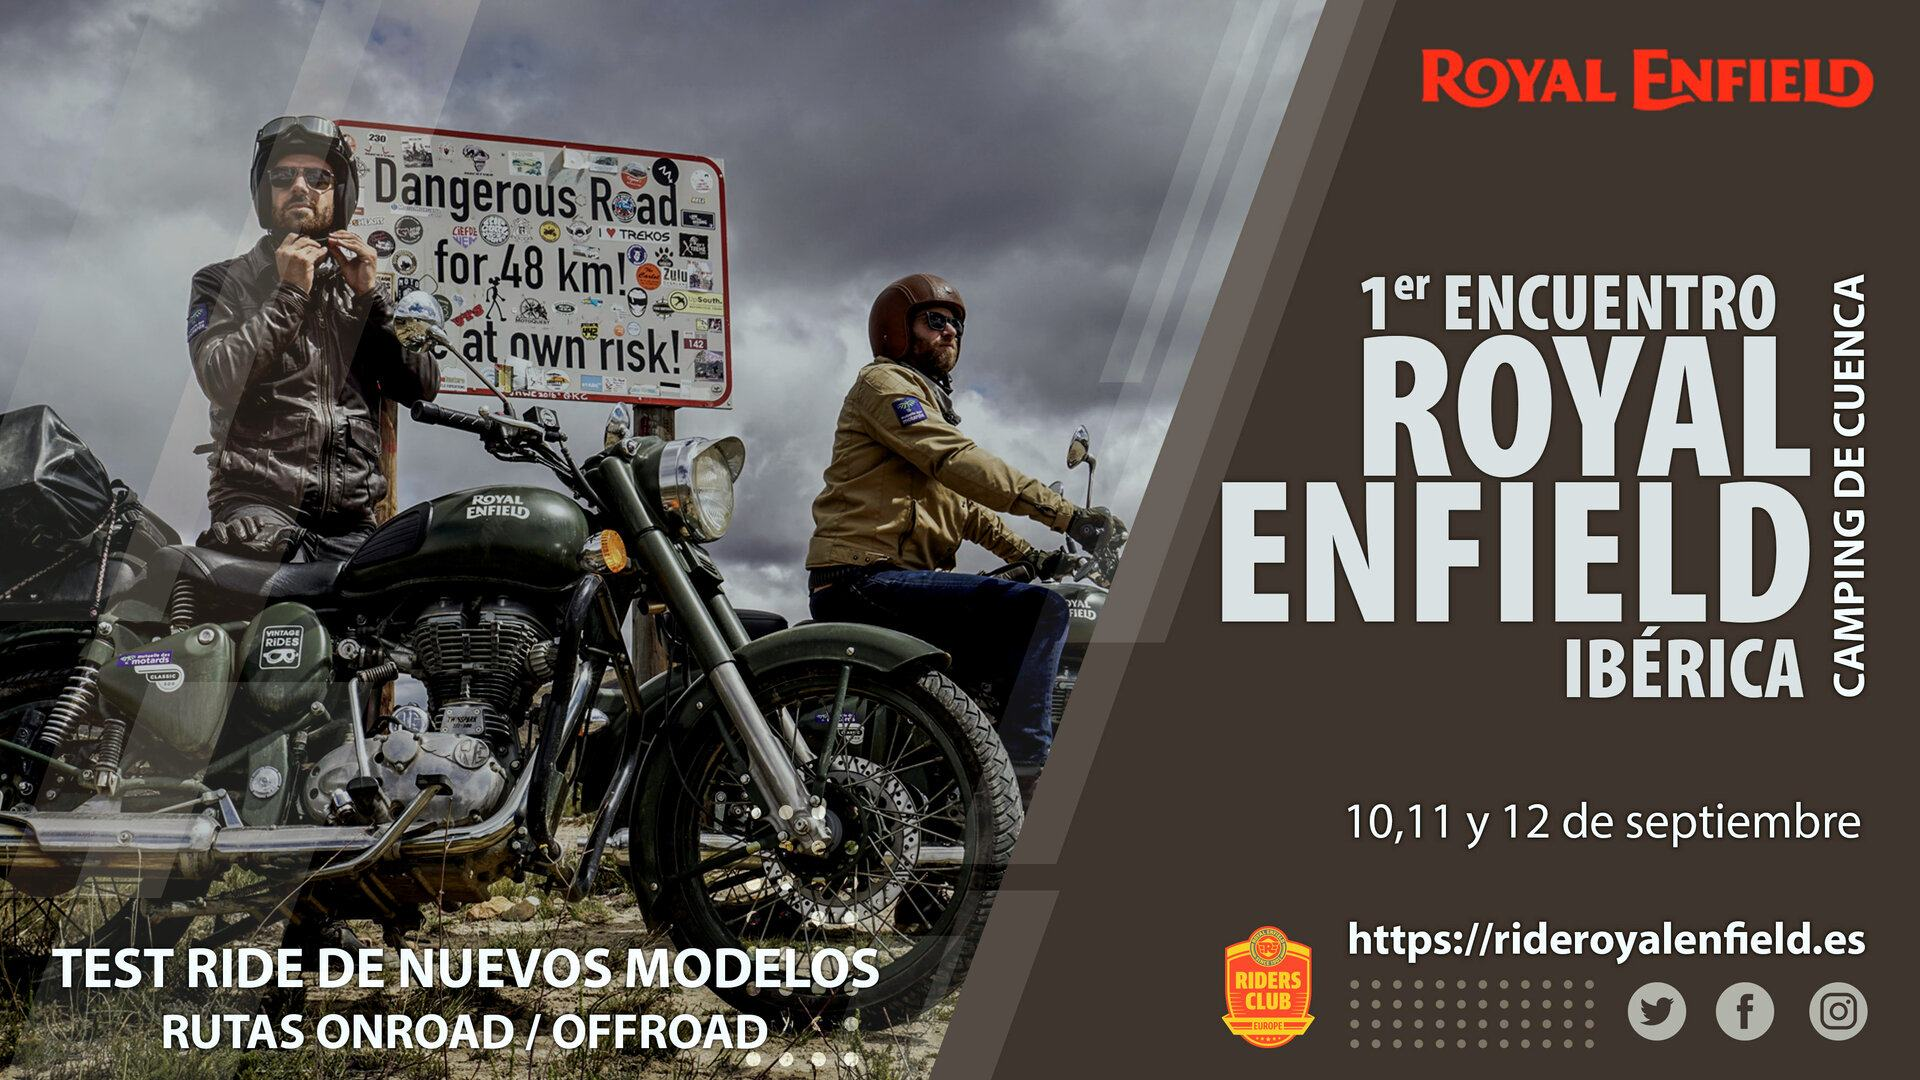 I Encuentro Royal Enfield Iberica 2021 2